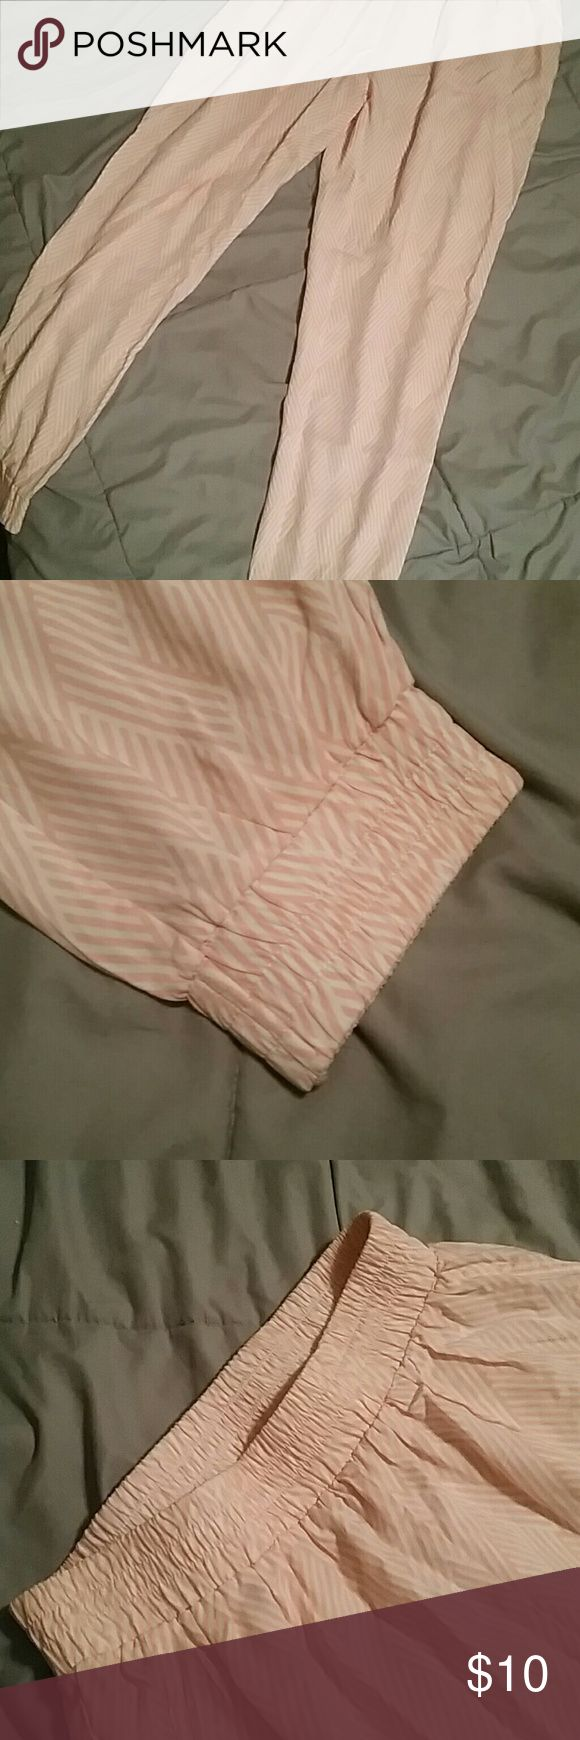 Peach Jumper Pants Stripped pattern, peach color.  These pants are tight around the waist and ankles but loose fitting on the thighs, butt, and legs. Very thin material and very comfortable. In great condition. I'm open to offers! Pants Jumpsuits & Rompers